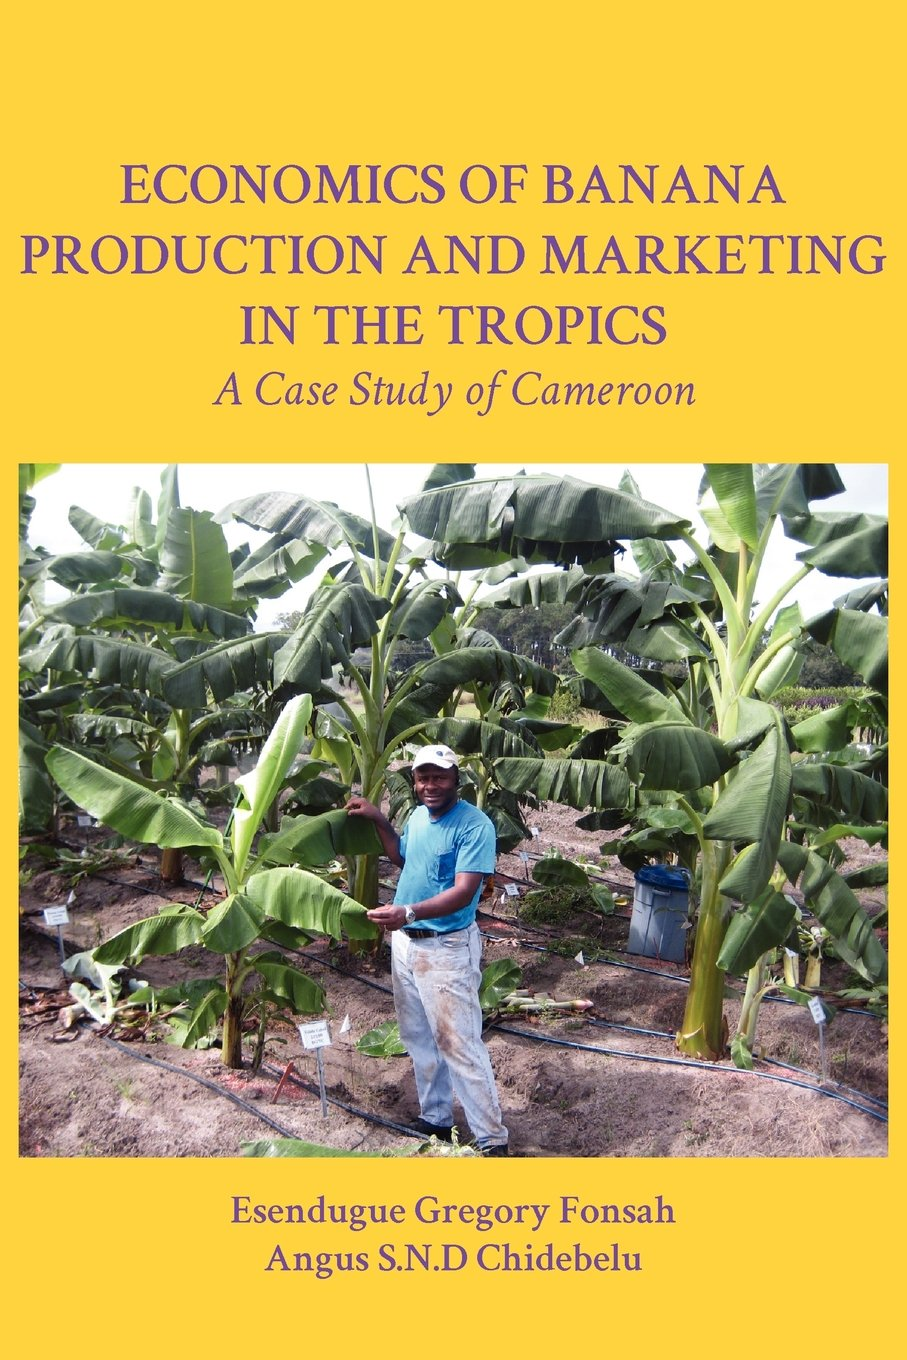 Economics of Banana Production and Marketing in the Tropics. A Case Study of Cameroon Paperback – December 15, 2011 Esendugue Gregory Fonsah Angus S.N.D Chidebelu Langaa RPCIG 9956726540